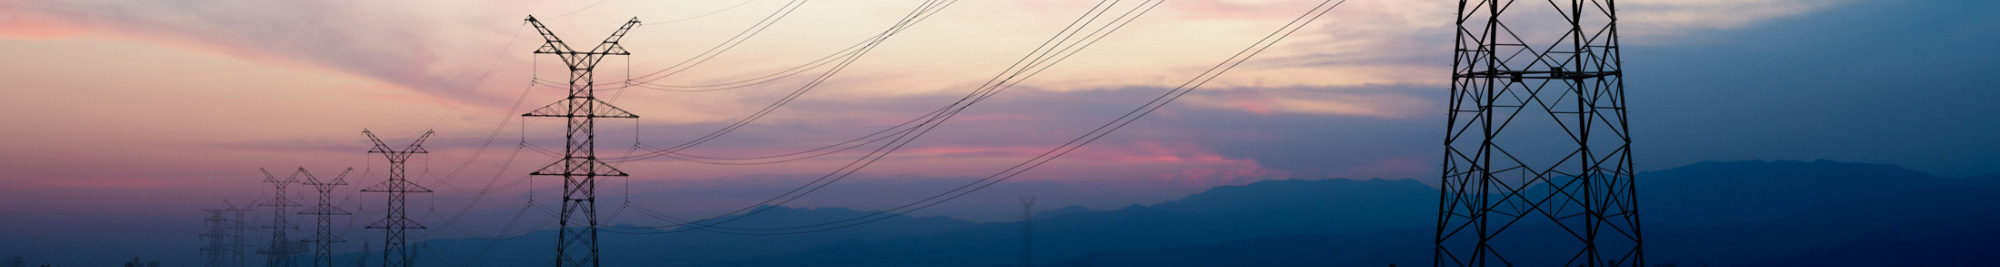 banner-power-lines